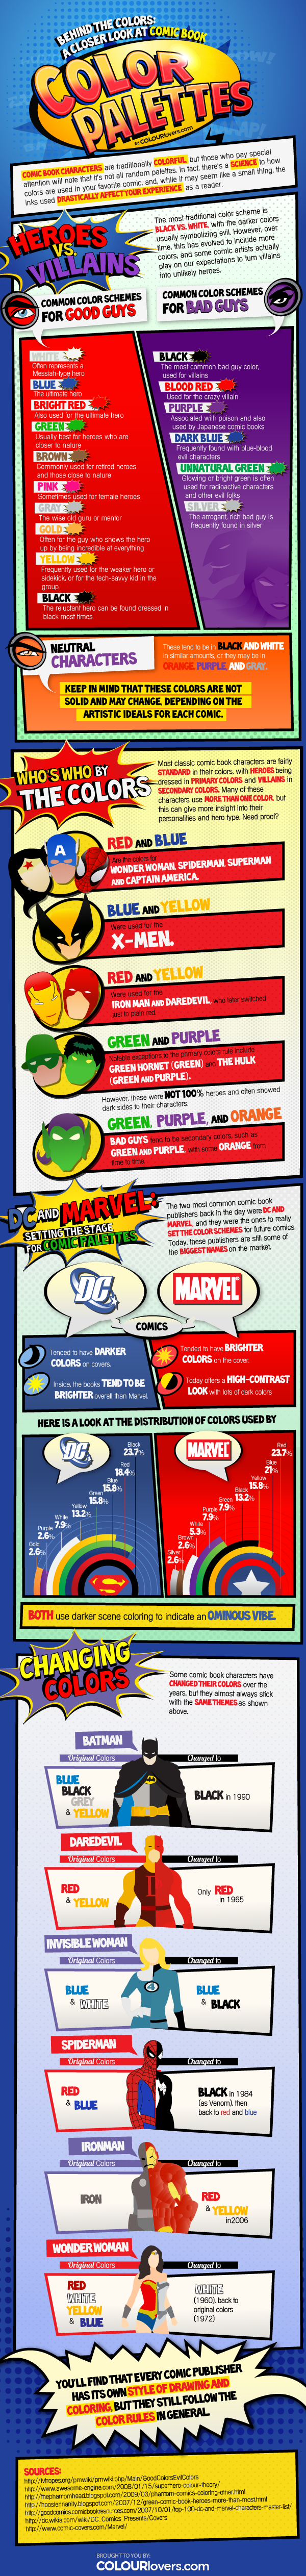 How To Choose The Color Palette While Designing A Comic Book